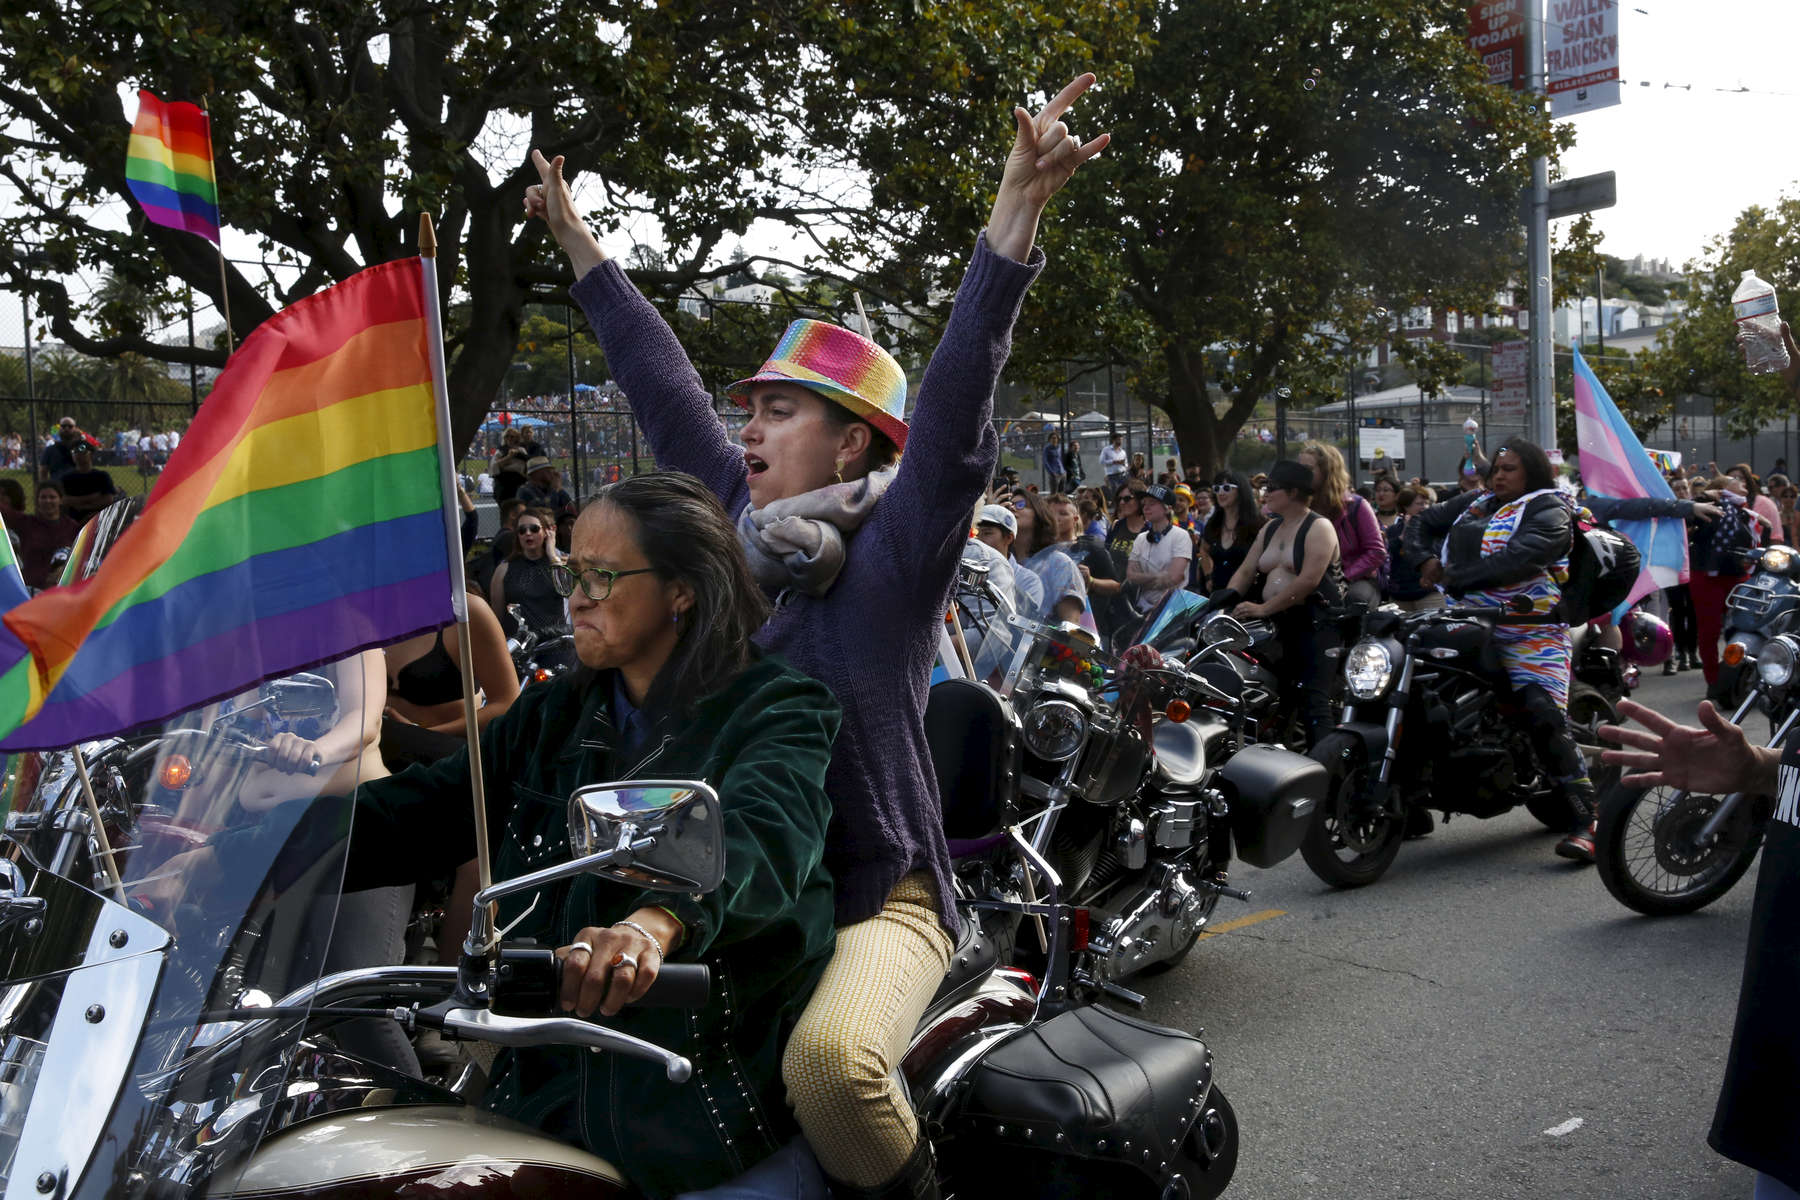 Chagua Camacho, left, revs her engine as Tracy Burt cheers right before they start the parade with the rest of the Dykes on Bikes during the annual Dyke March that started at Mission Dolores park and snaked around the neighborhood up through the Castro and back June 24, 2017 in San Francisco, Calif.